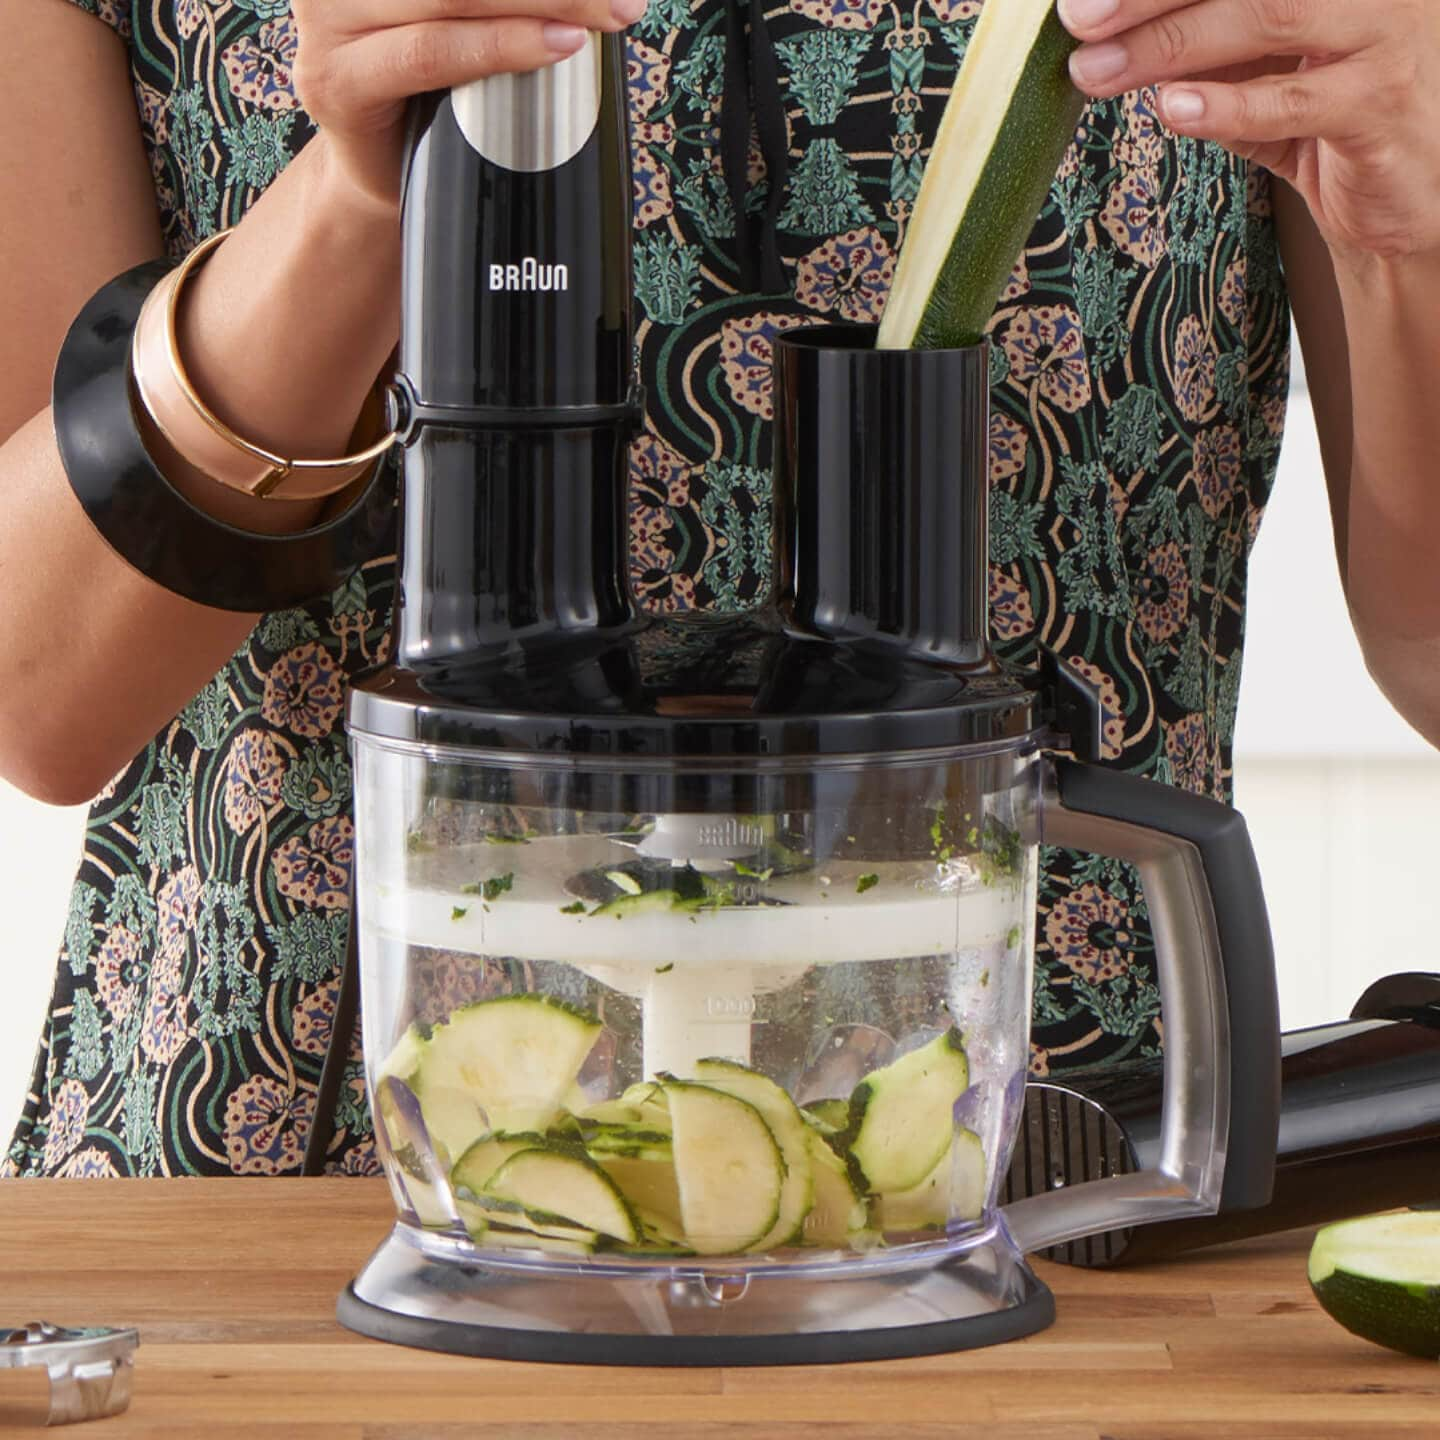 Braun MultiQuick 9 Hand blender accessory - food processor